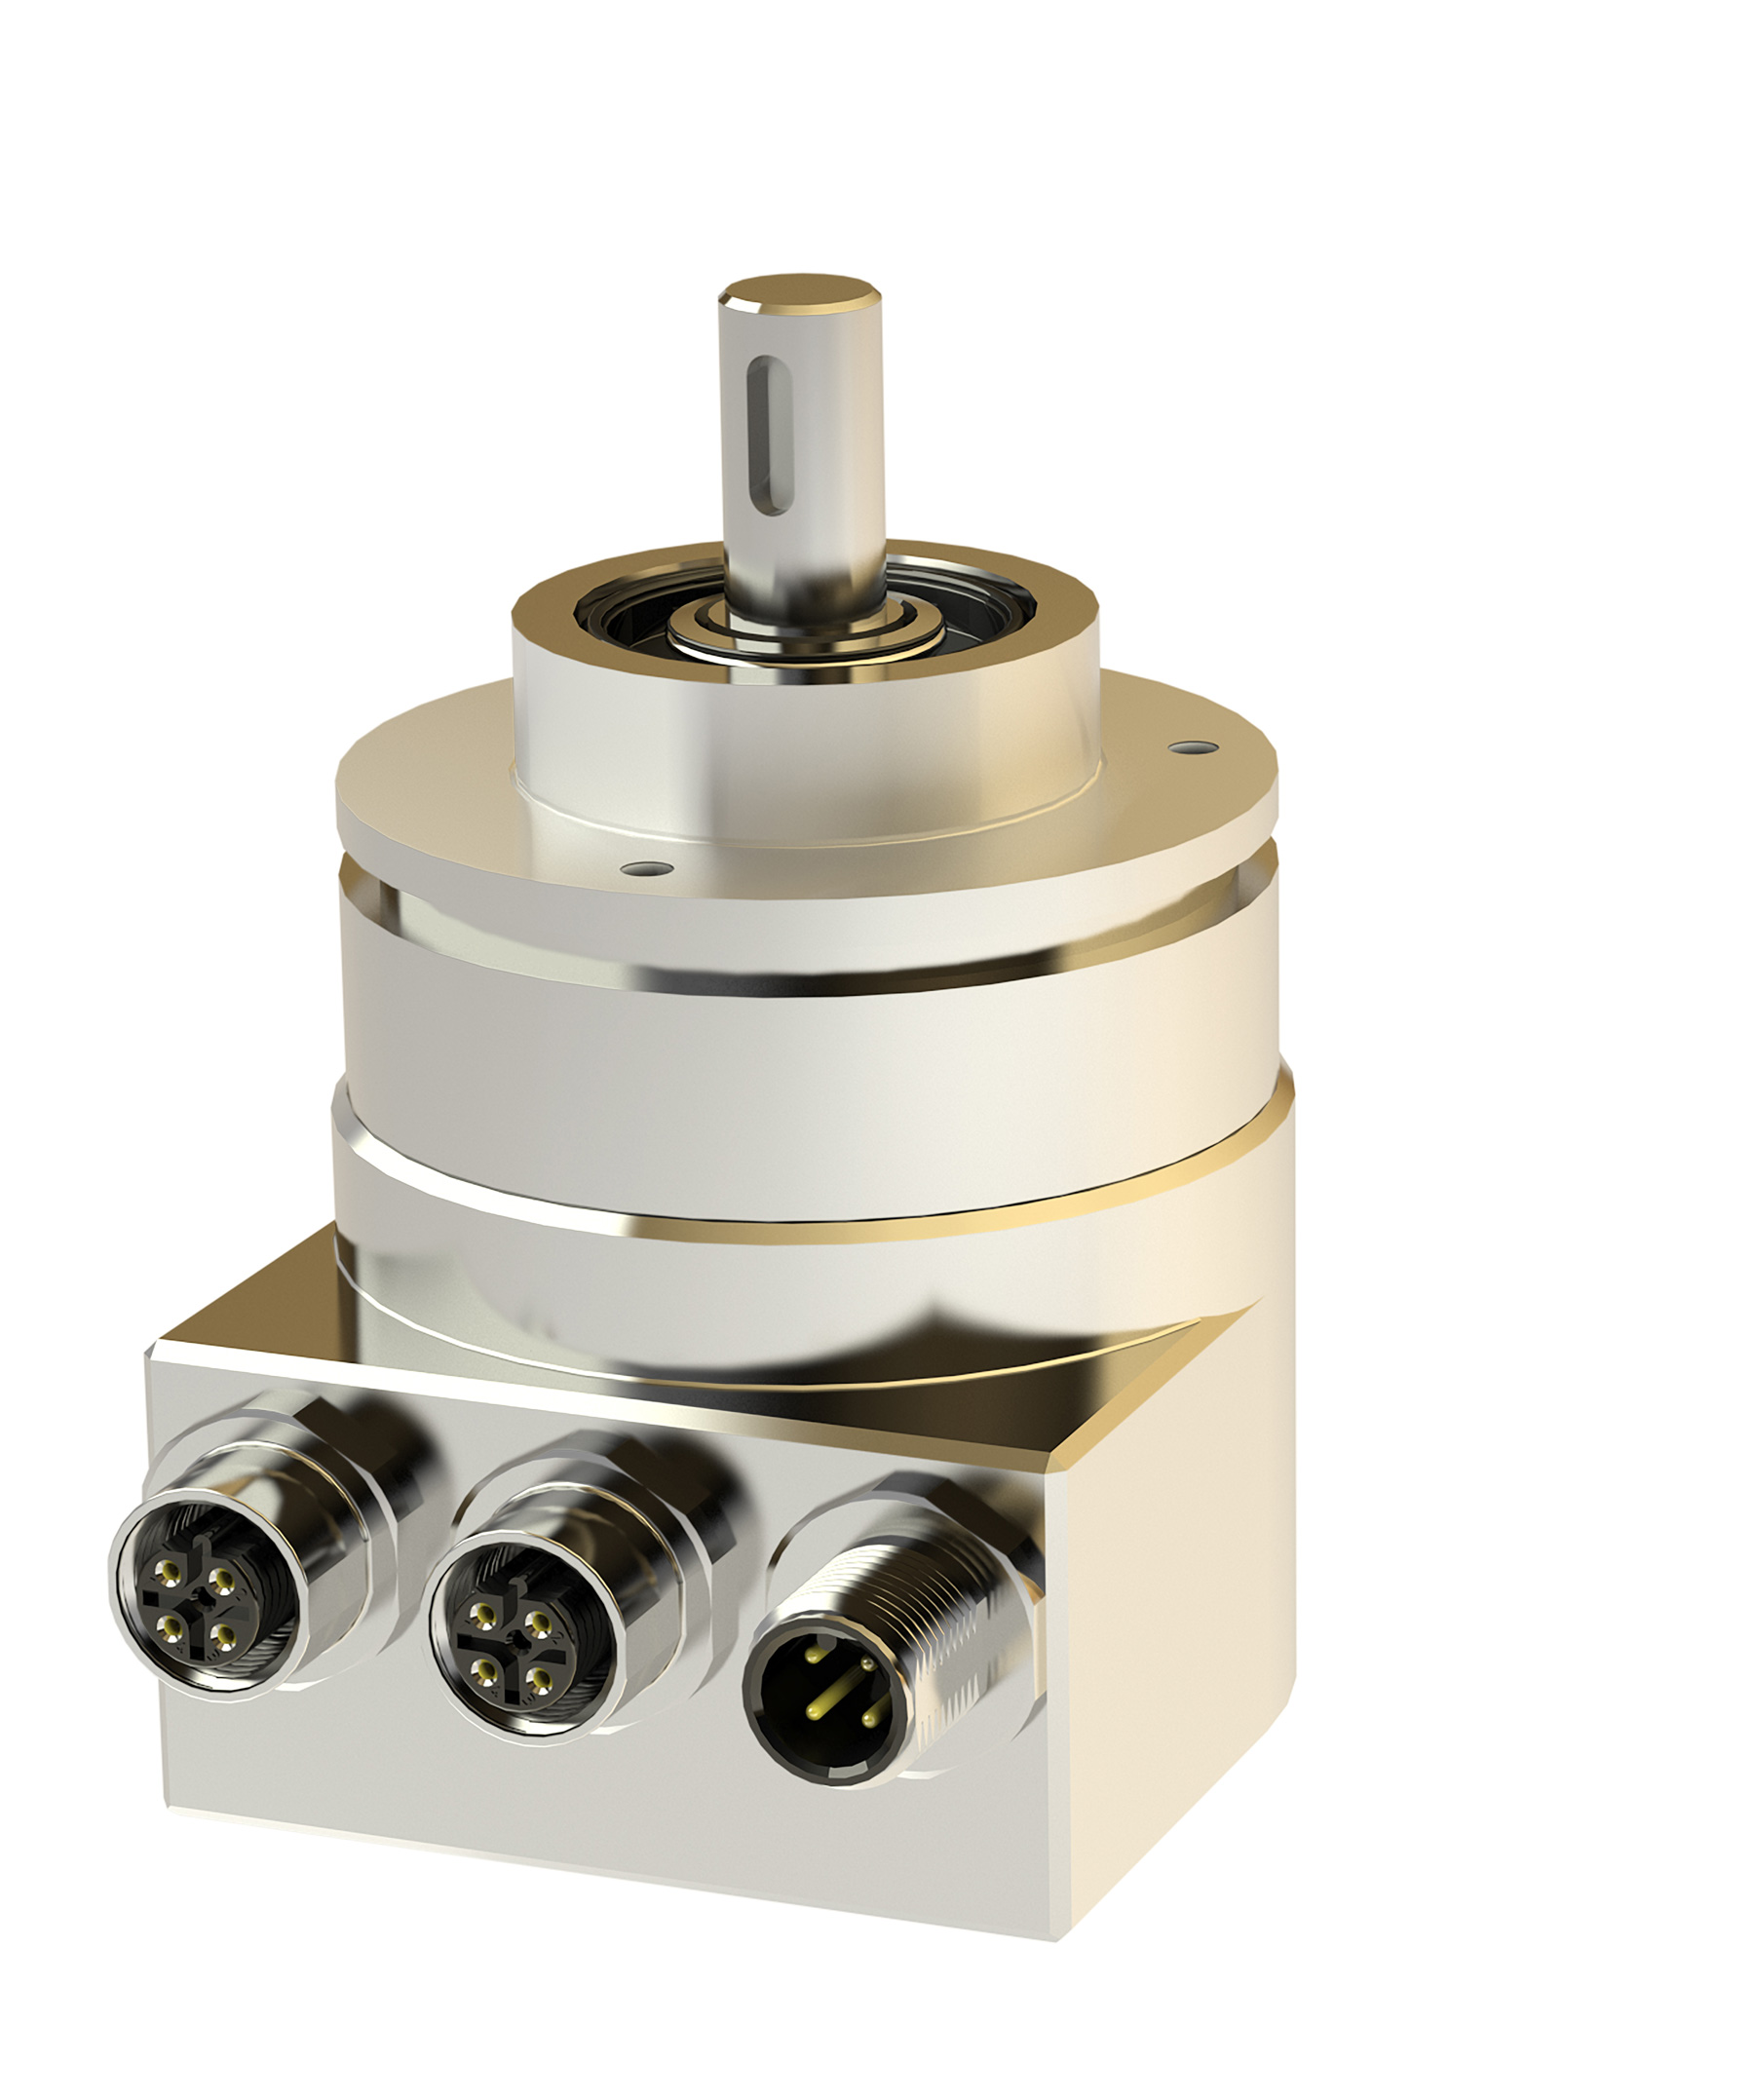 Absolute PROFIsafe over PROFINET rotary encoder TRT/S3 SIL2